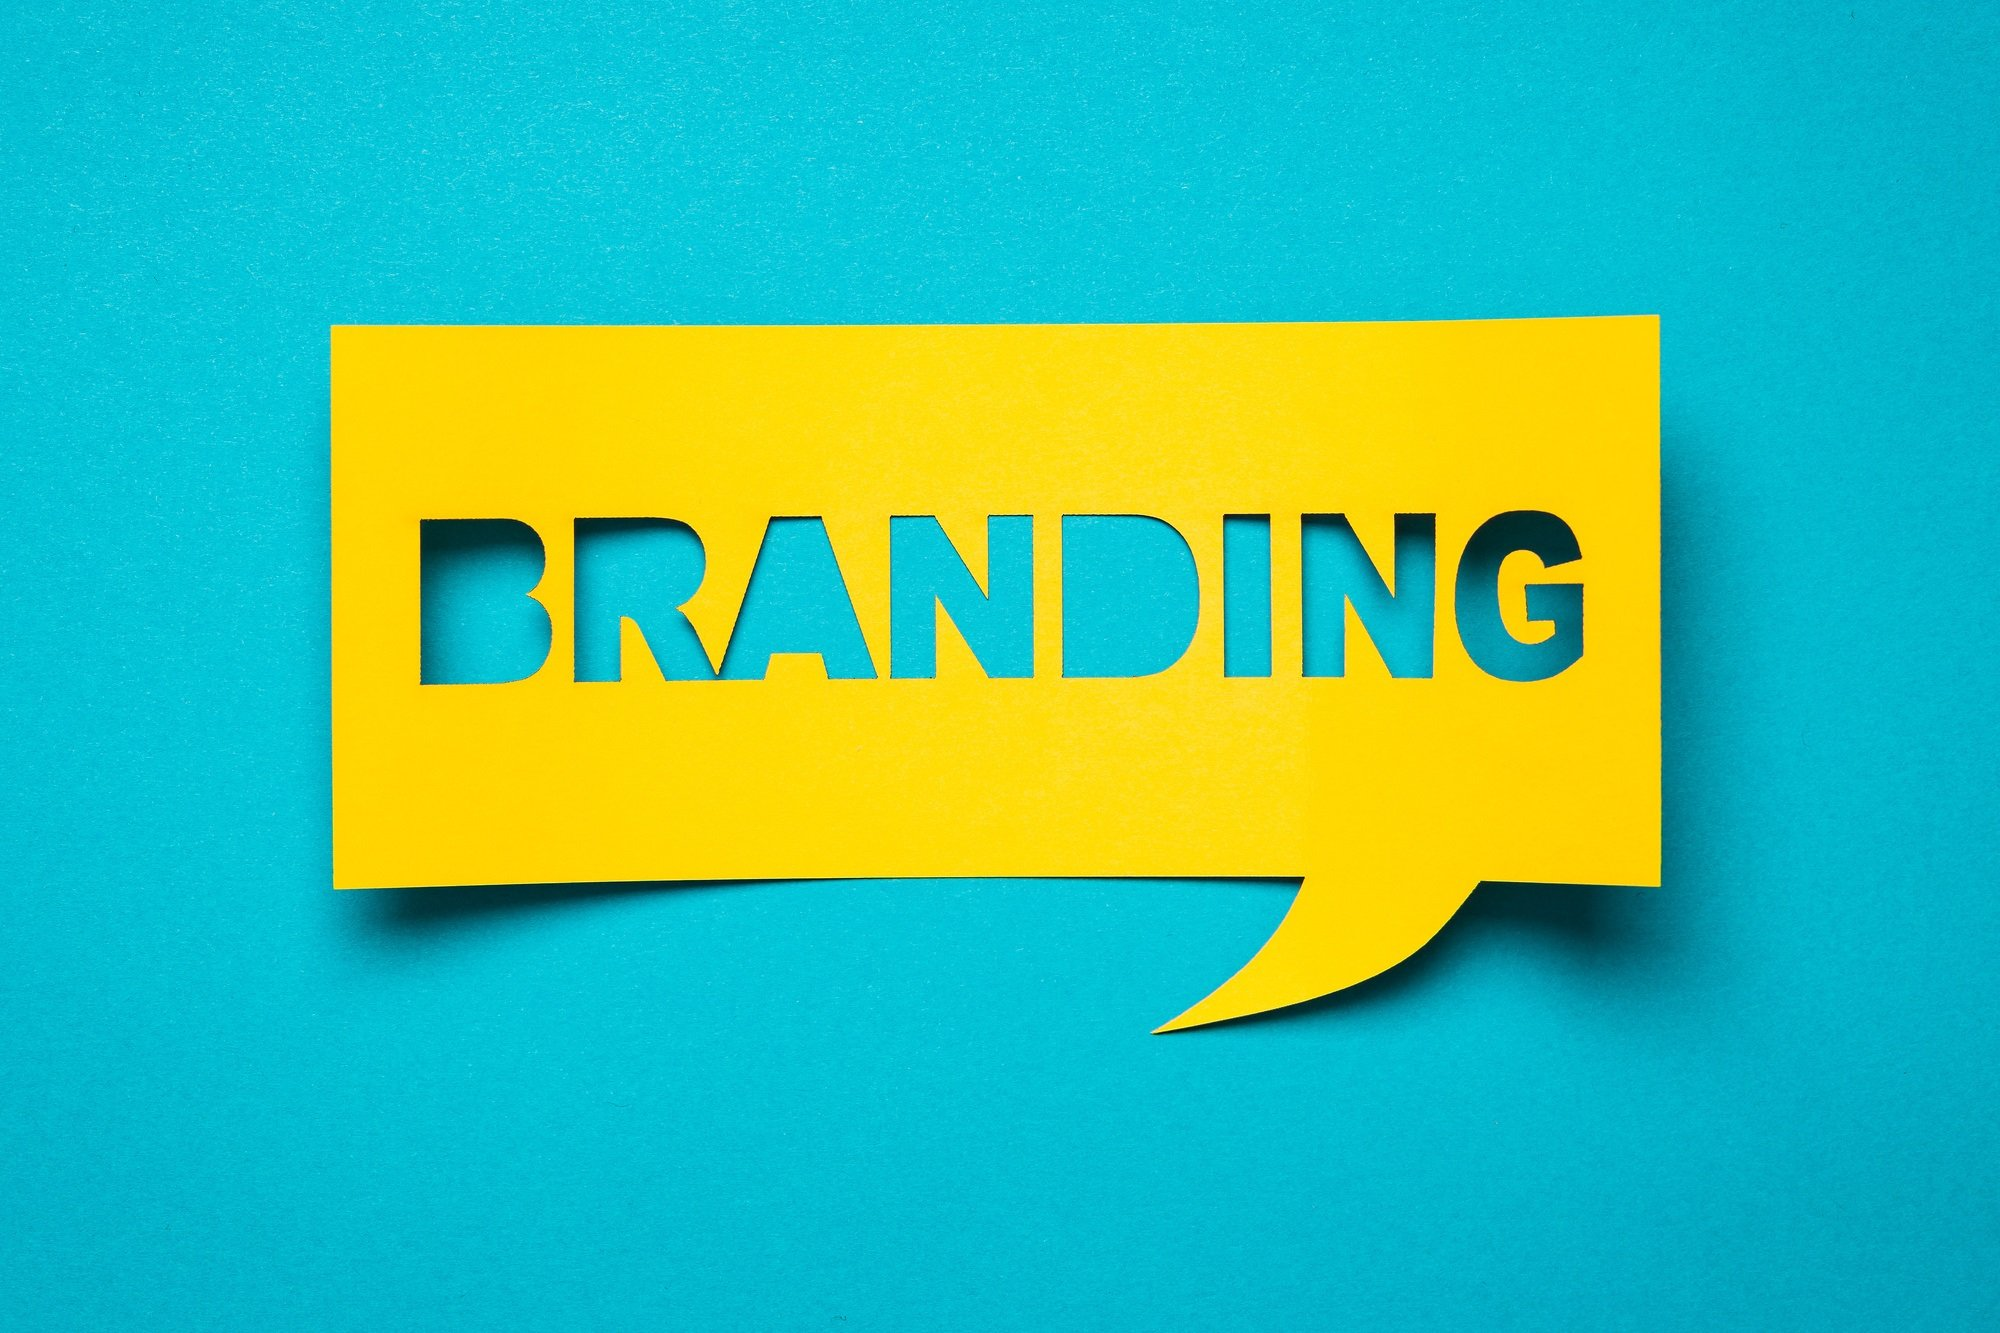 5 Tips to Change Branding Without Harming Your Business